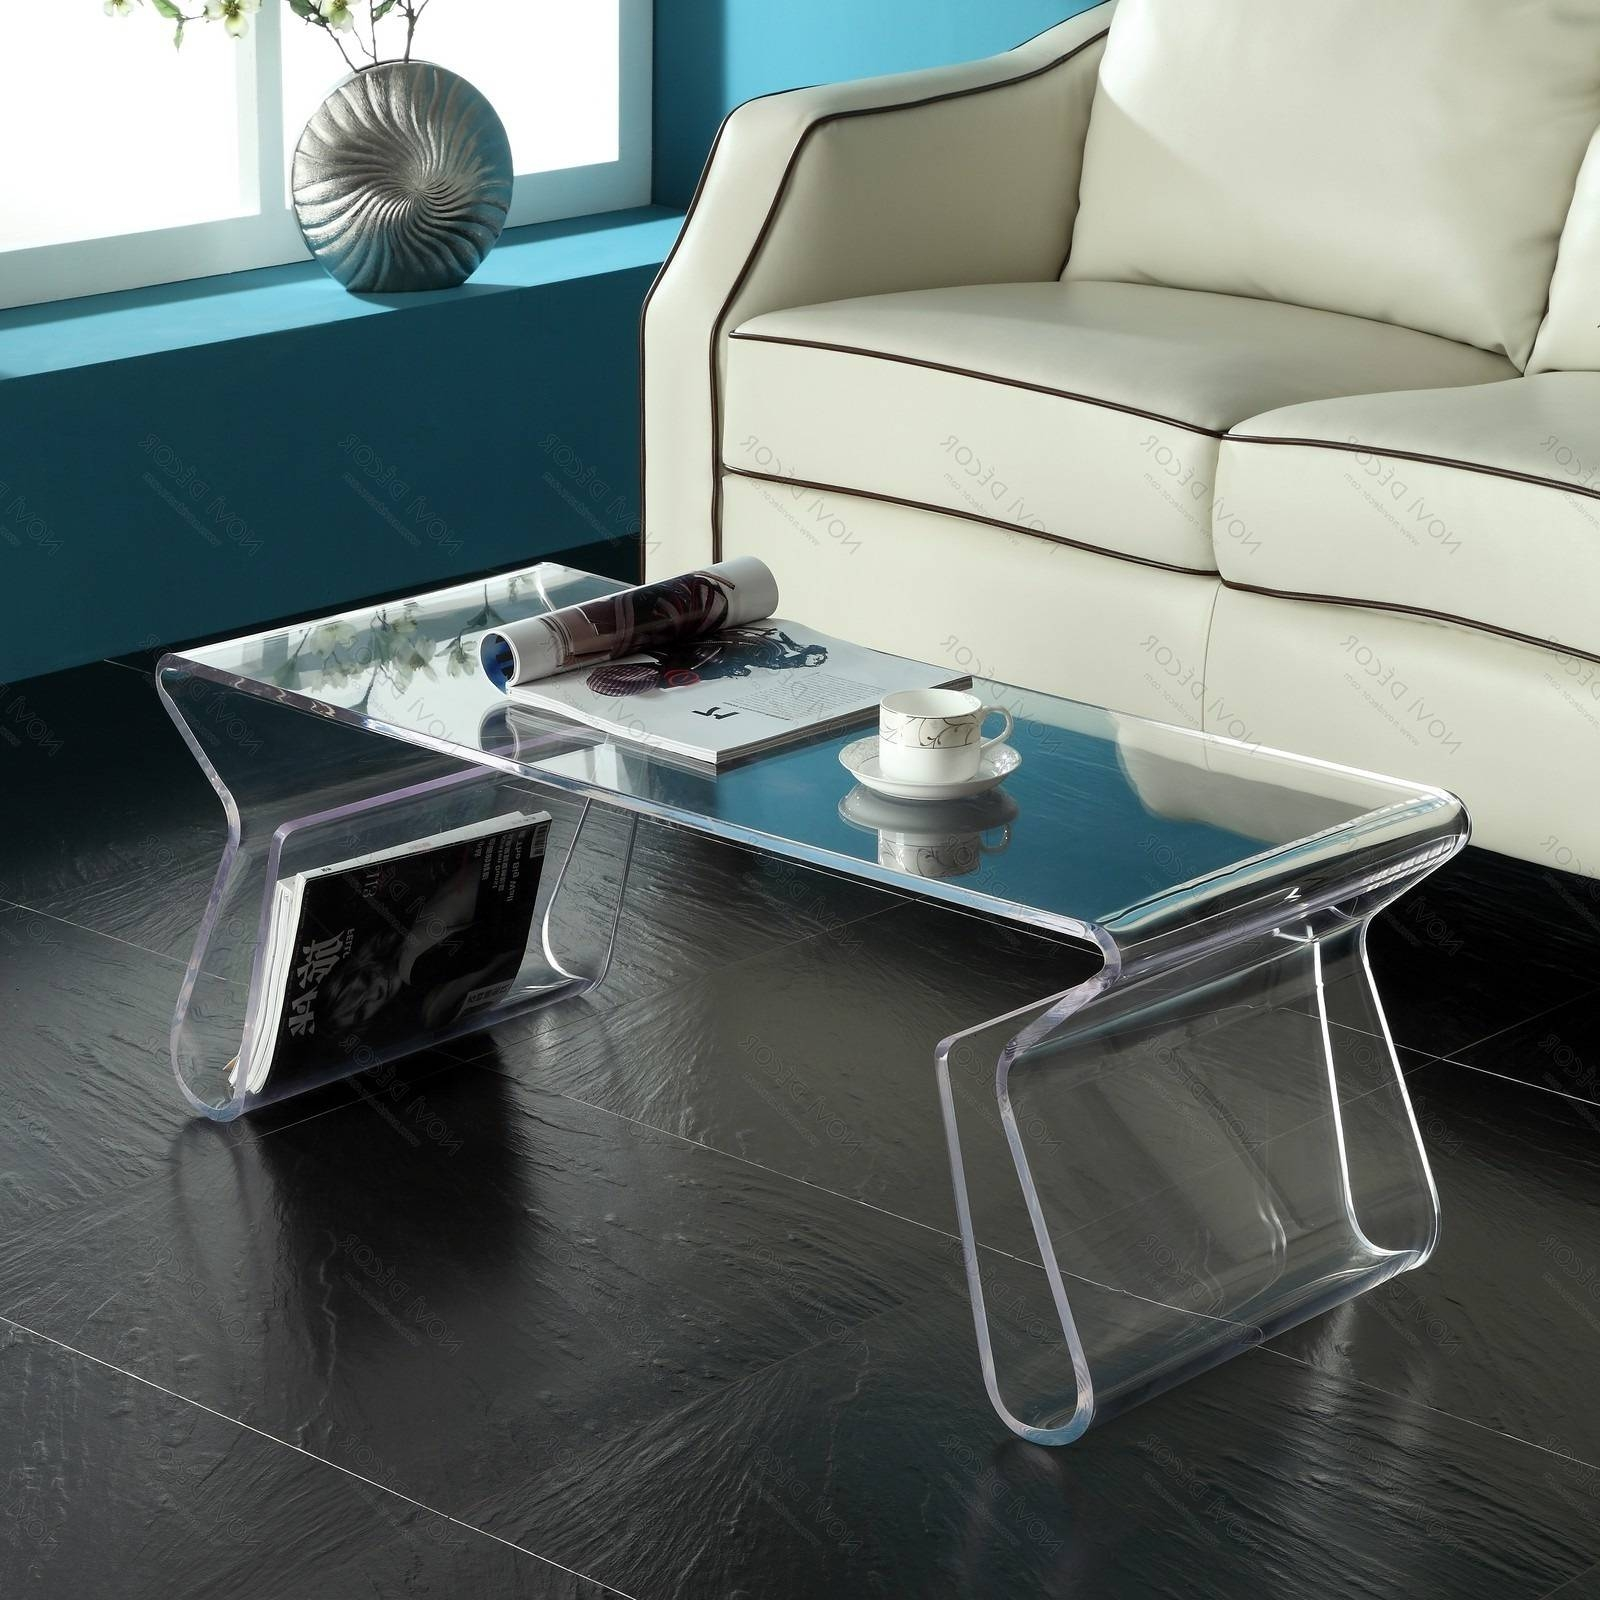 Coffee Tables : Acrylic Coffee Table Tobeknown Acrylic Cube Table with regard to Acrylic Coffee Tables With Magazine Rack (Image 13 of 30)